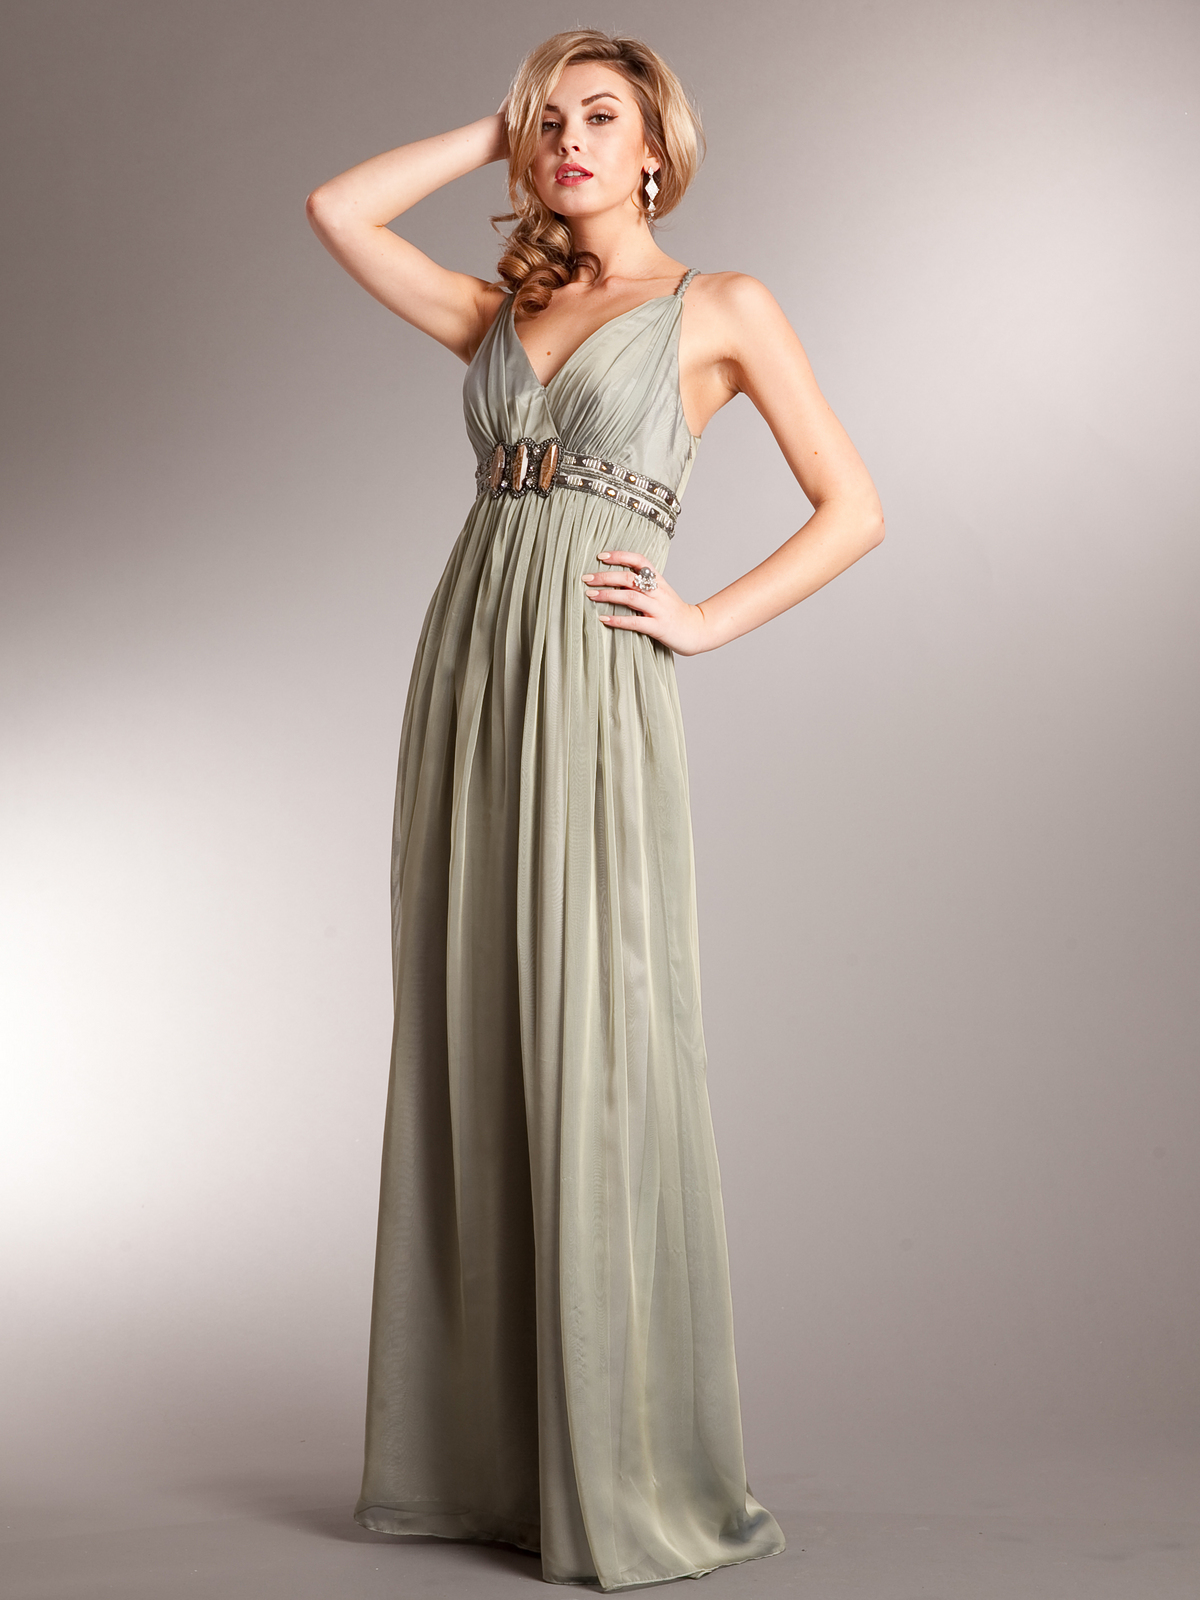 Grecian Goddess Halter Evening Dress | Sung Boutique L.A.